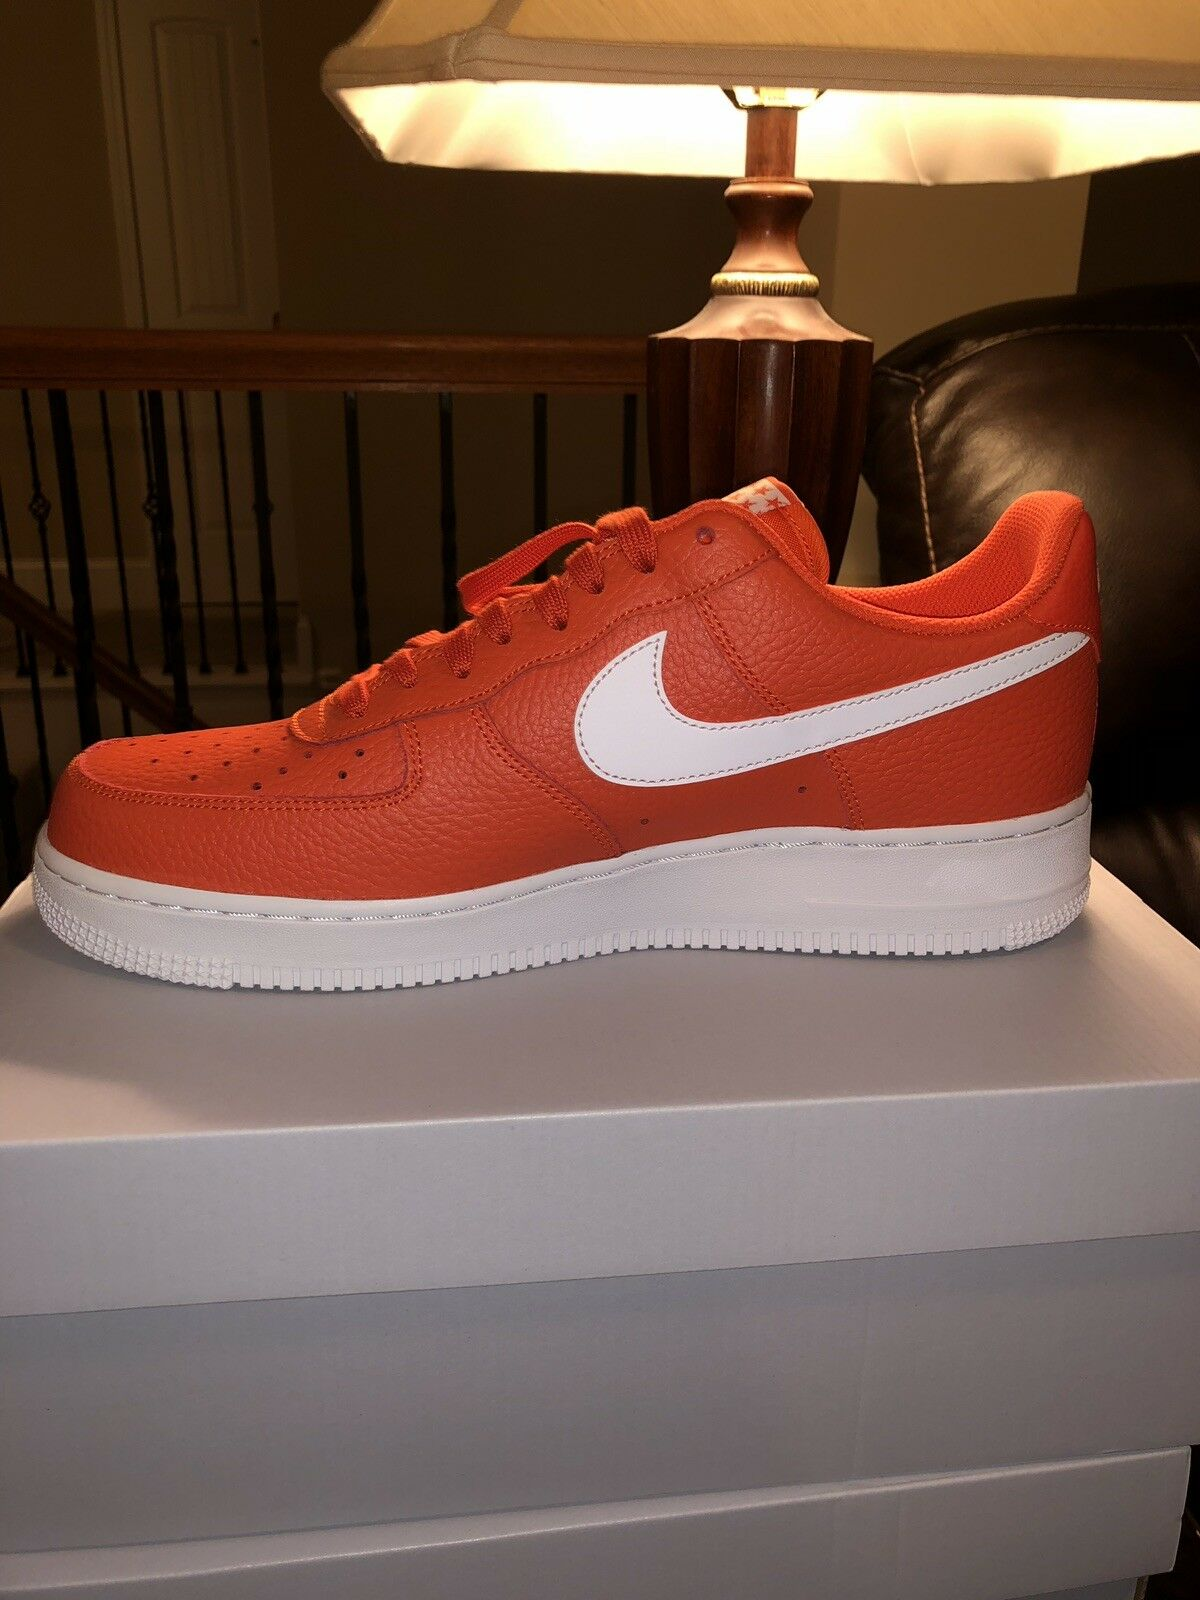 New Nike Air Force 1 '07 Low Mens shoes Size 12 Team orange White AA4083 800